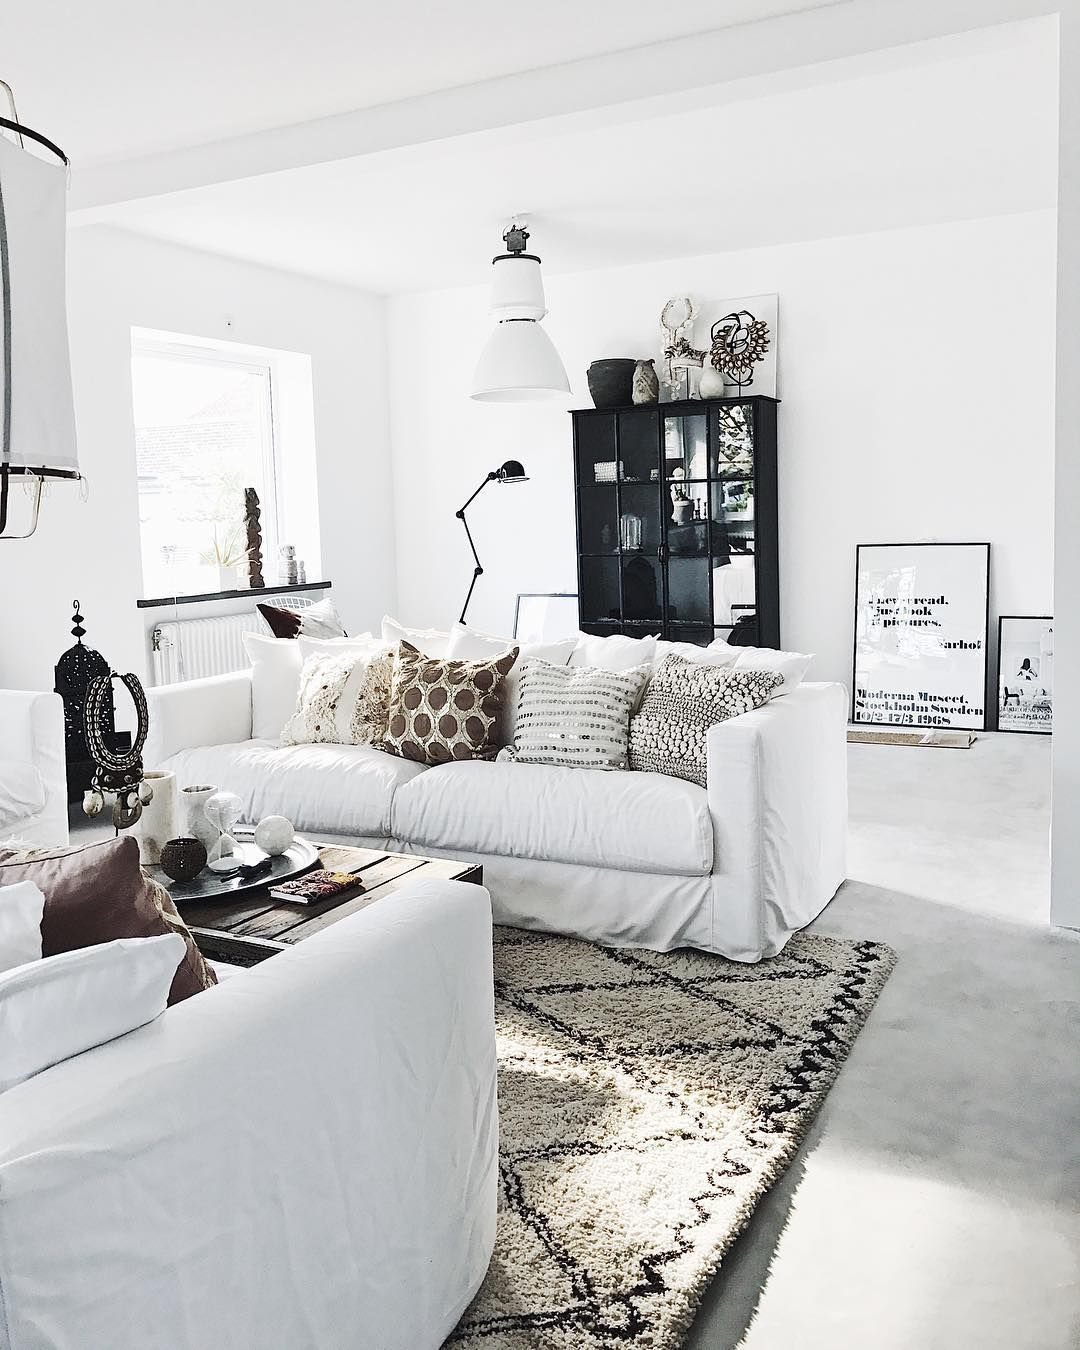 Pin by nell leguy on rooms pinterest ps living rooms and interiors